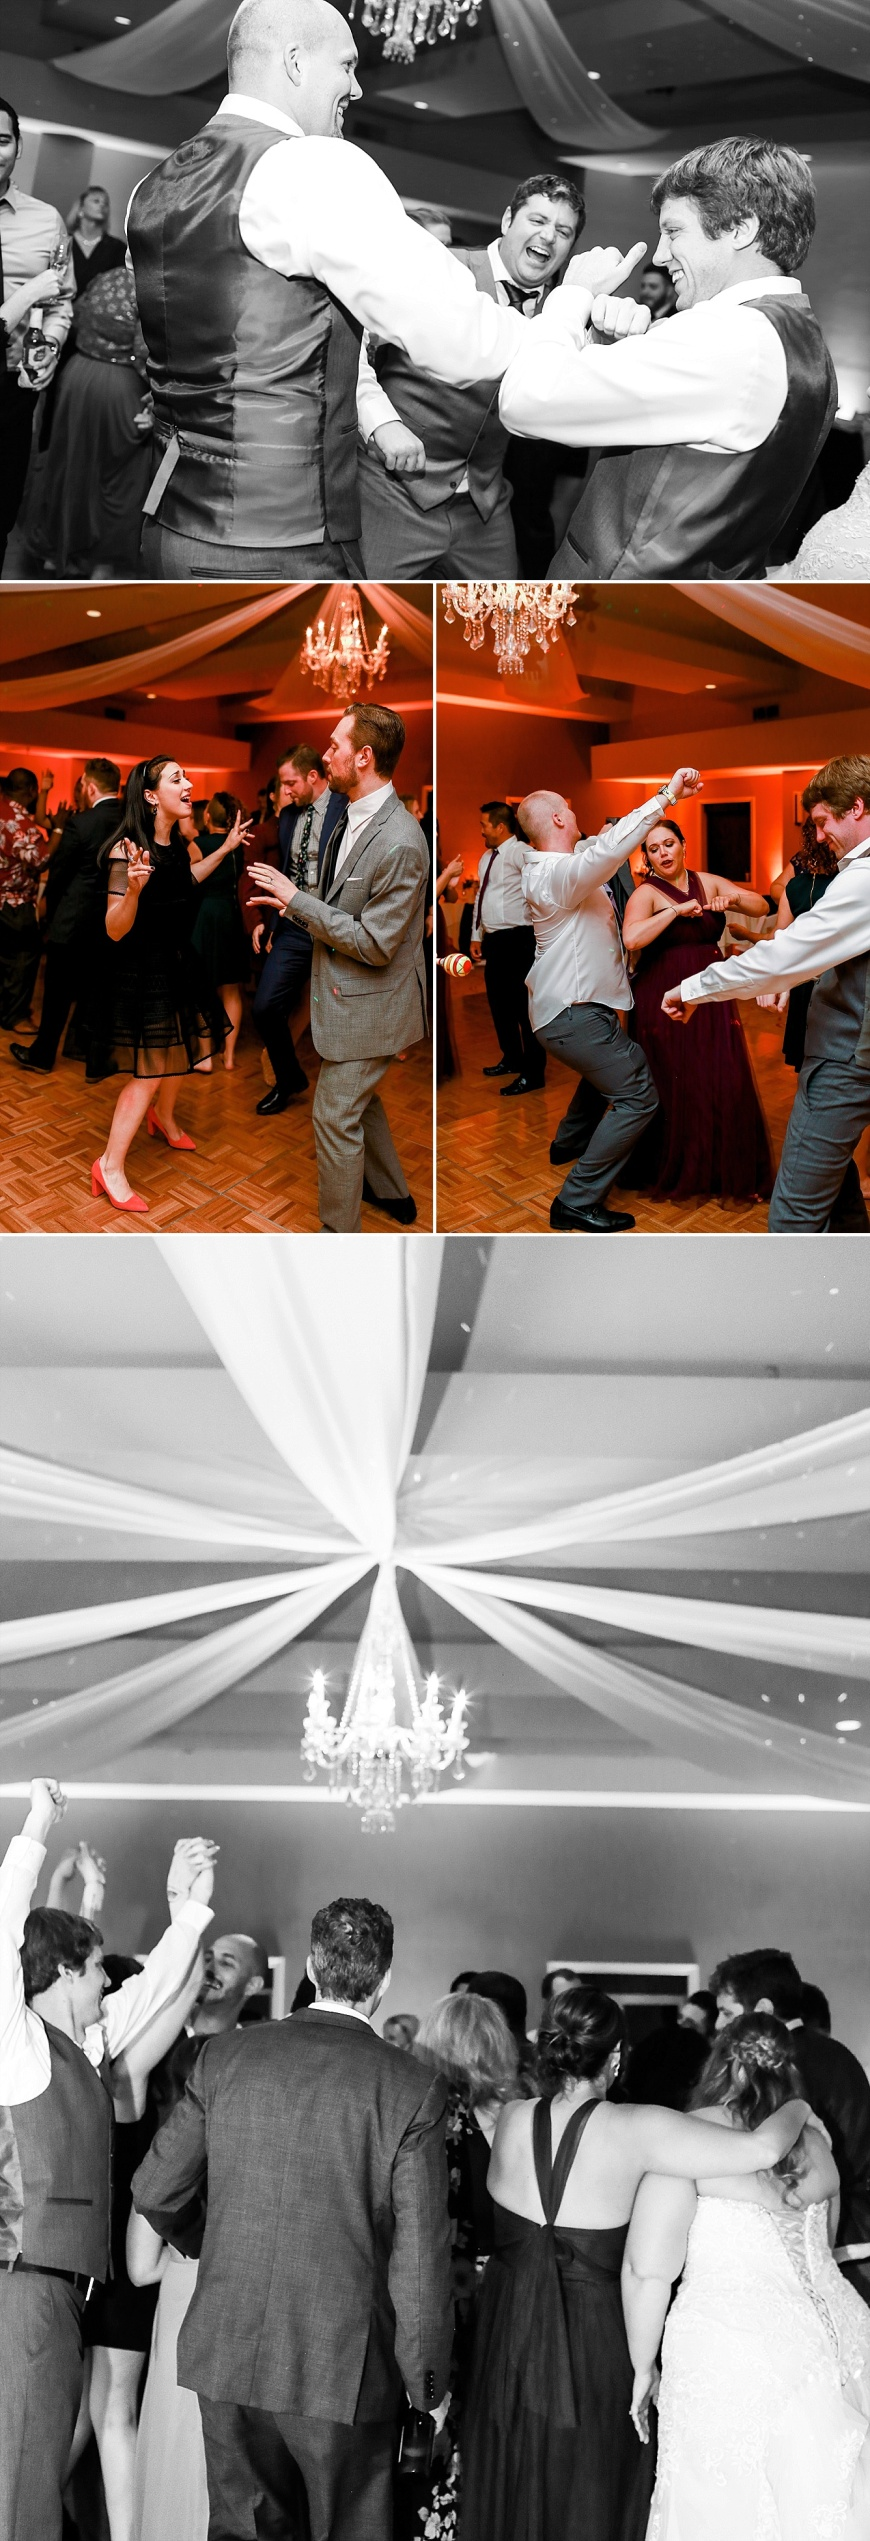 Chaminade-Resort-Santa-Cruz-Wedding Photographer_1128.jpg